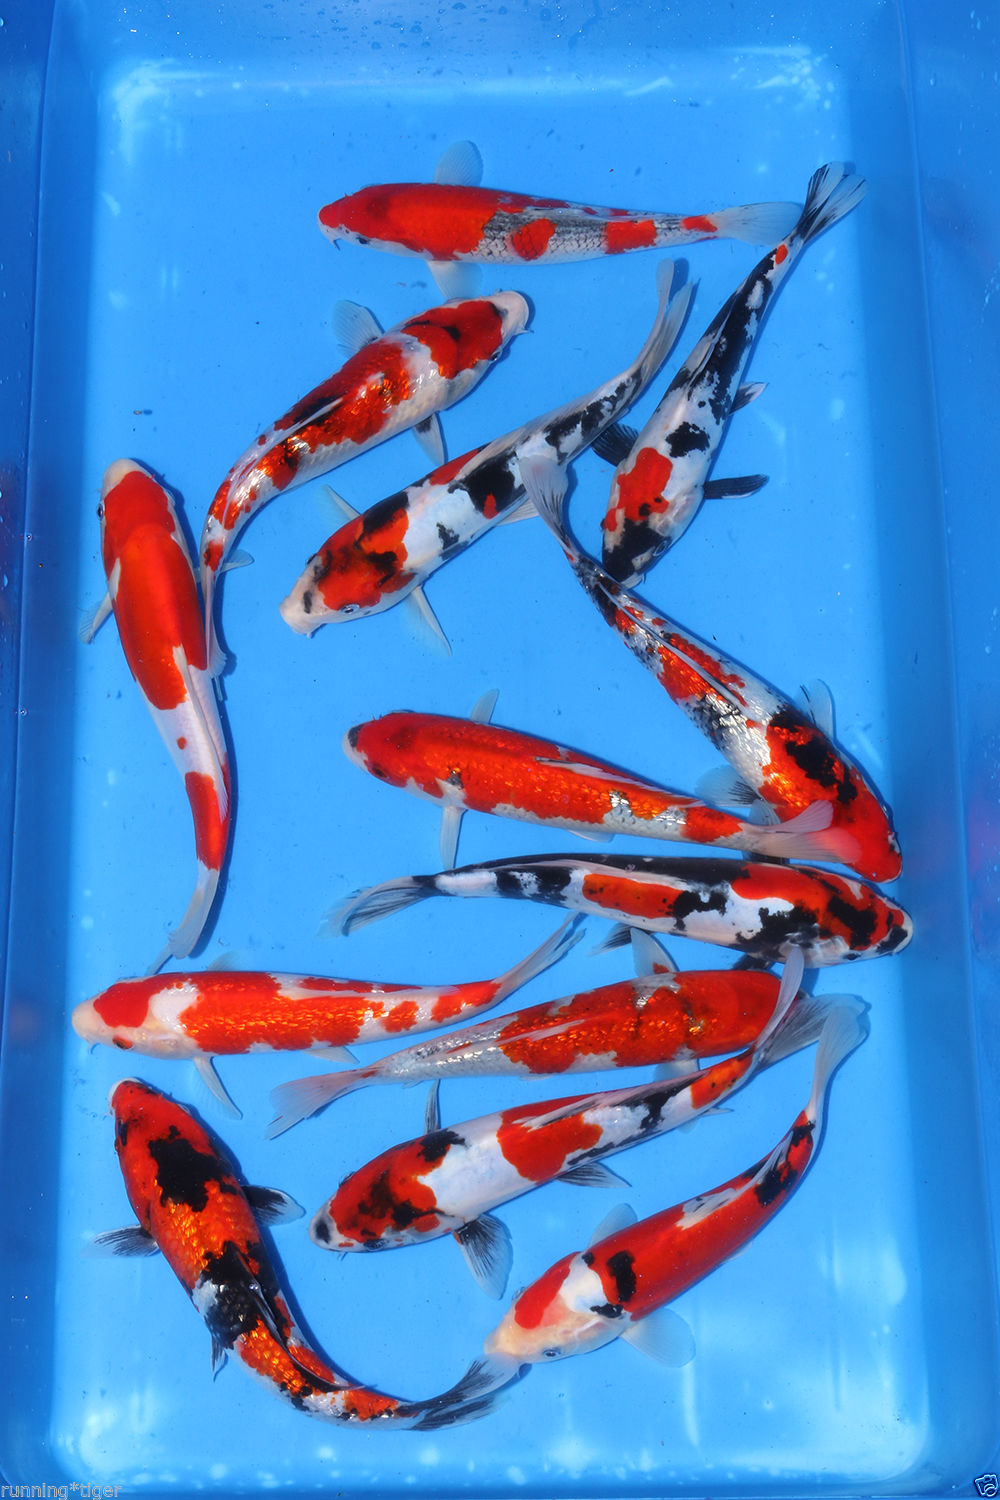 Japanese koi 393 tosai koi pond fish for sale bjs for Expensive koi carp for sale